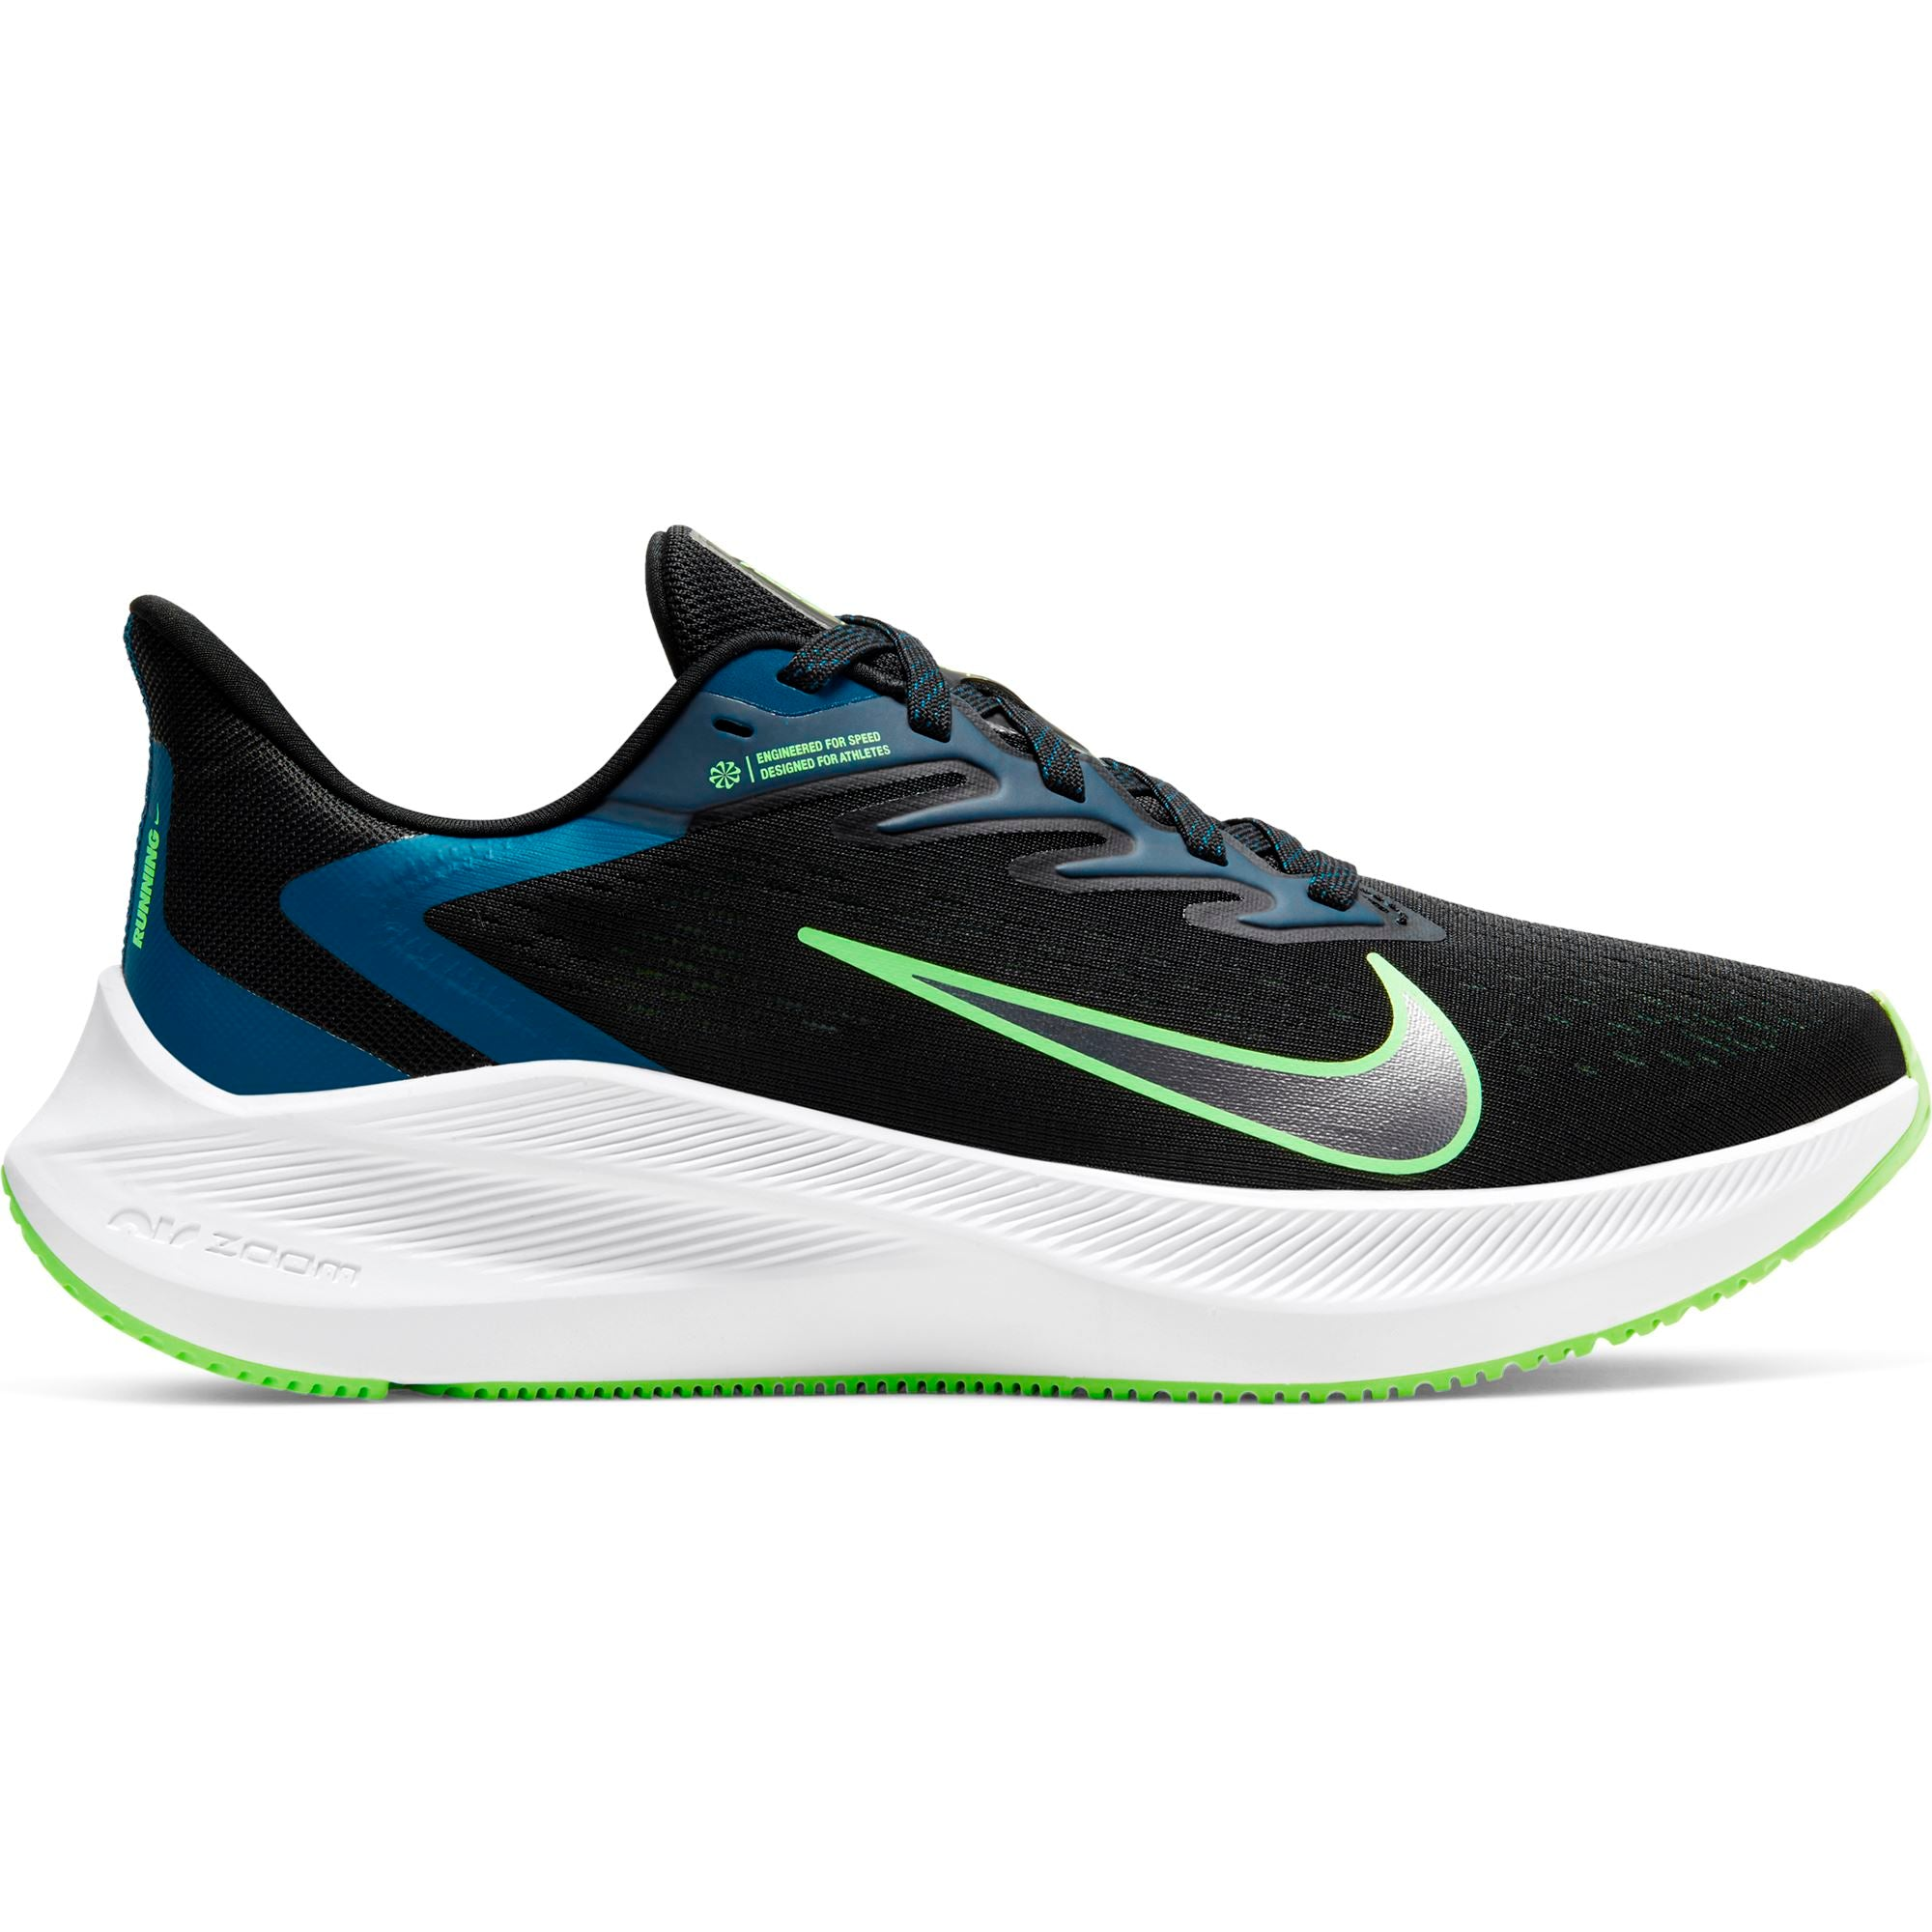 Nike Womens Air Zoom Winflo 7 - Black/Vapor Green-Valerian Blue SP-Footwear-Womens Nike